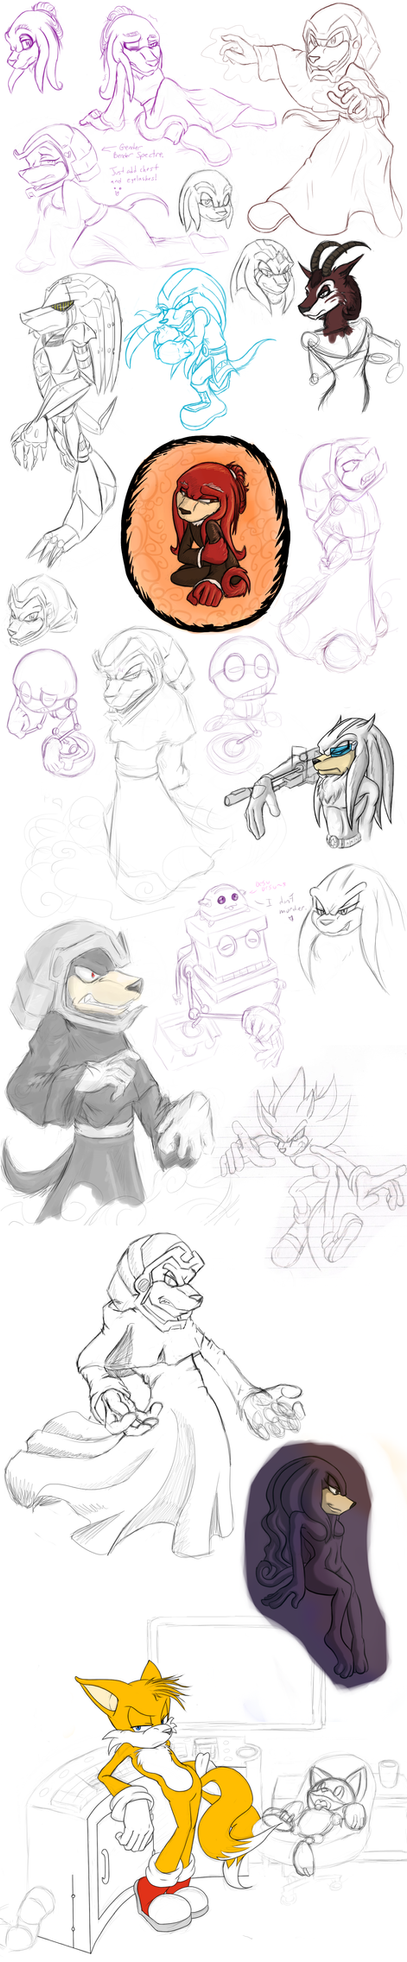 Another Sketch Dump by MarillMatey